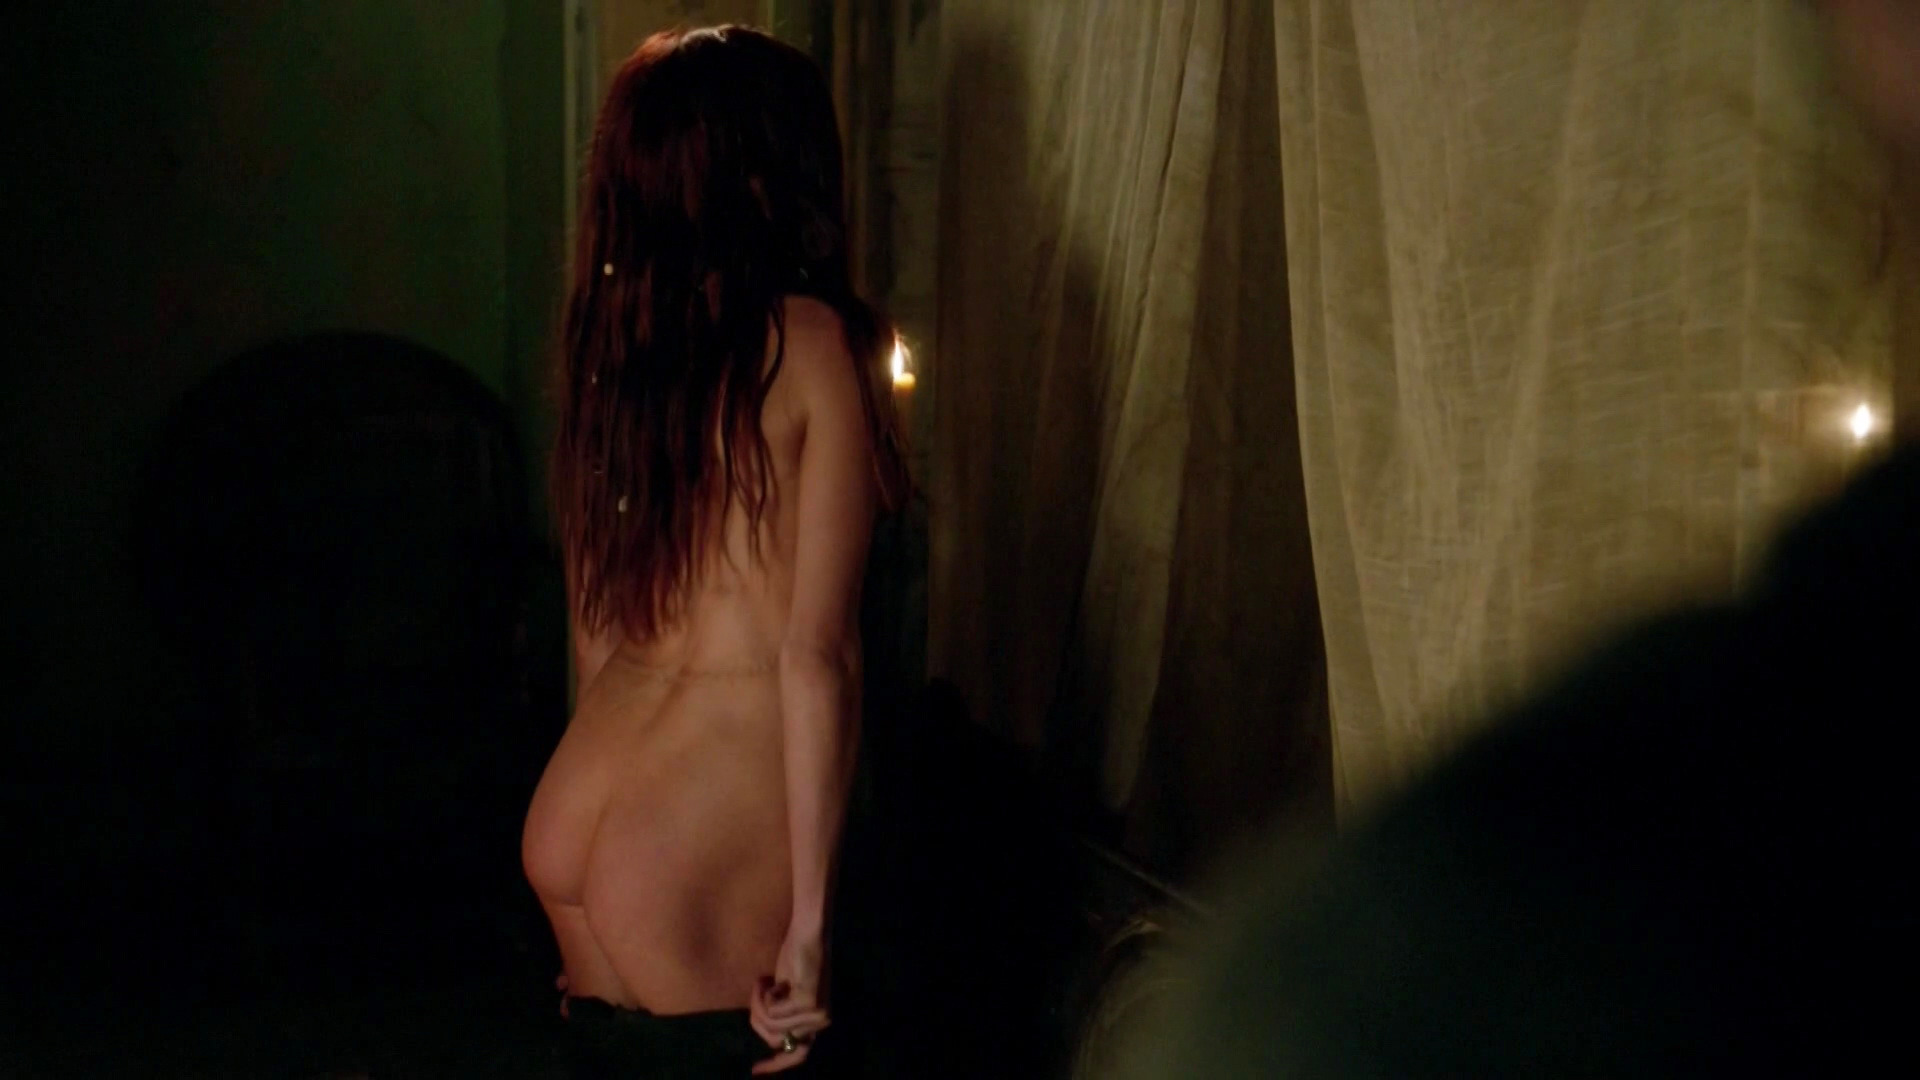 Accept. Paget brewster naked photo